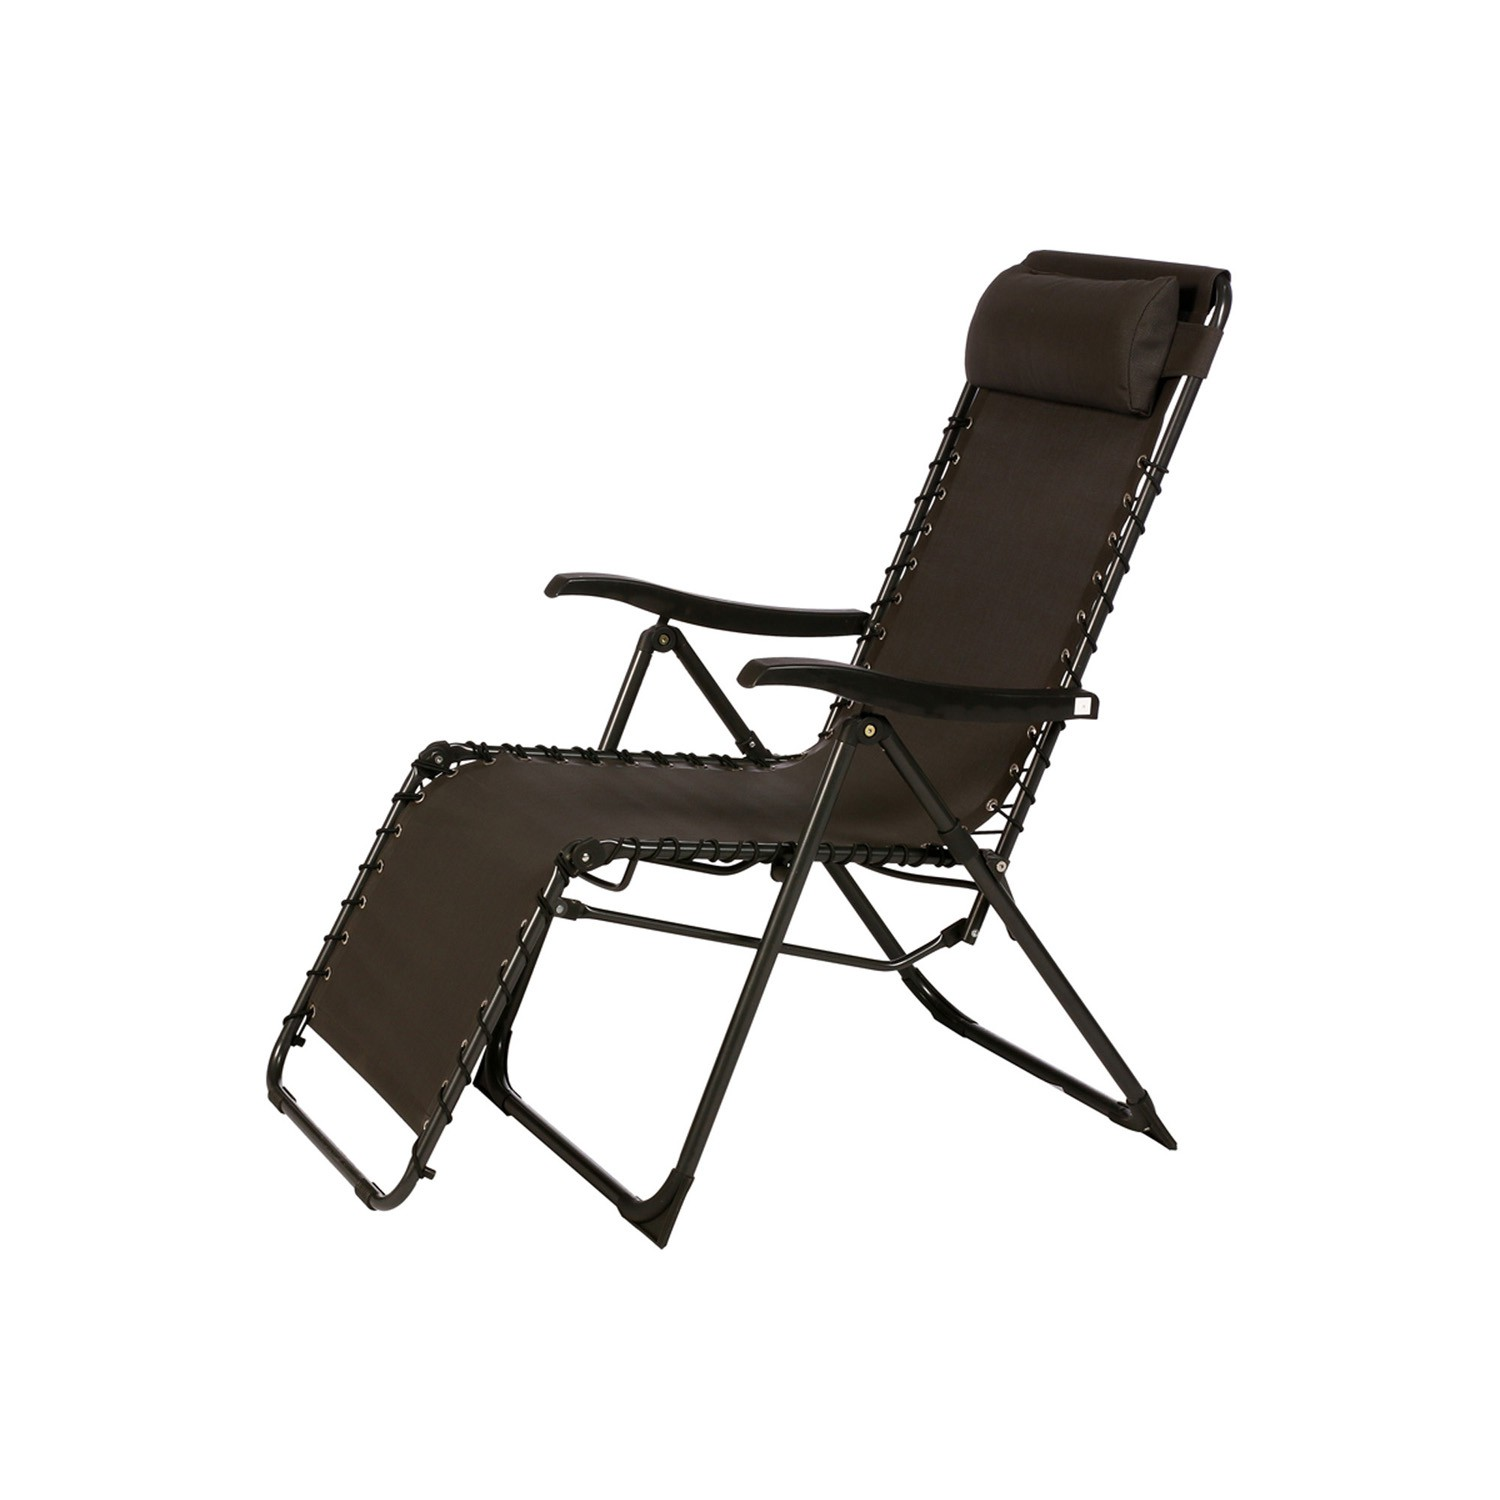 meilleur de fauteuil relax de jardin l 39 id e d 39 un tapis de bain. Black Bedroom Furniture Sets. Home Design Ideas